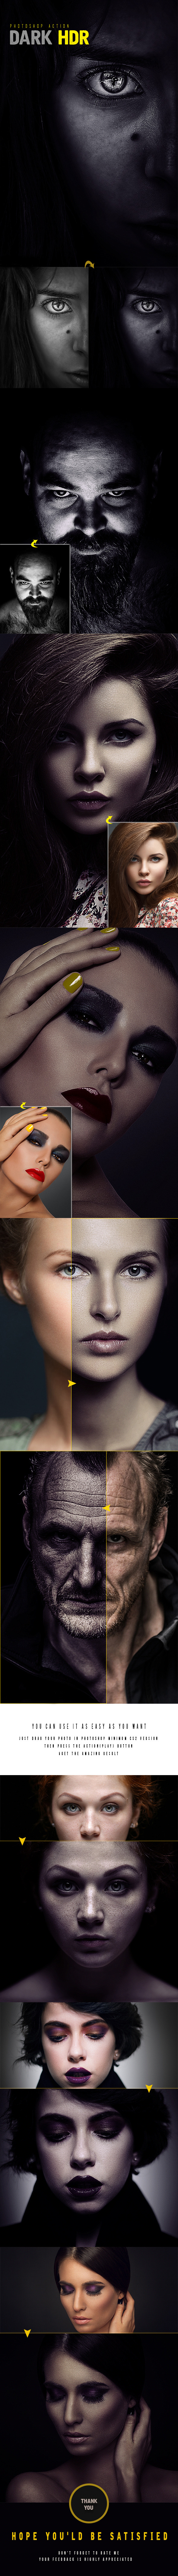 Dark HDR Photoshop Action - Photo Effects Actions